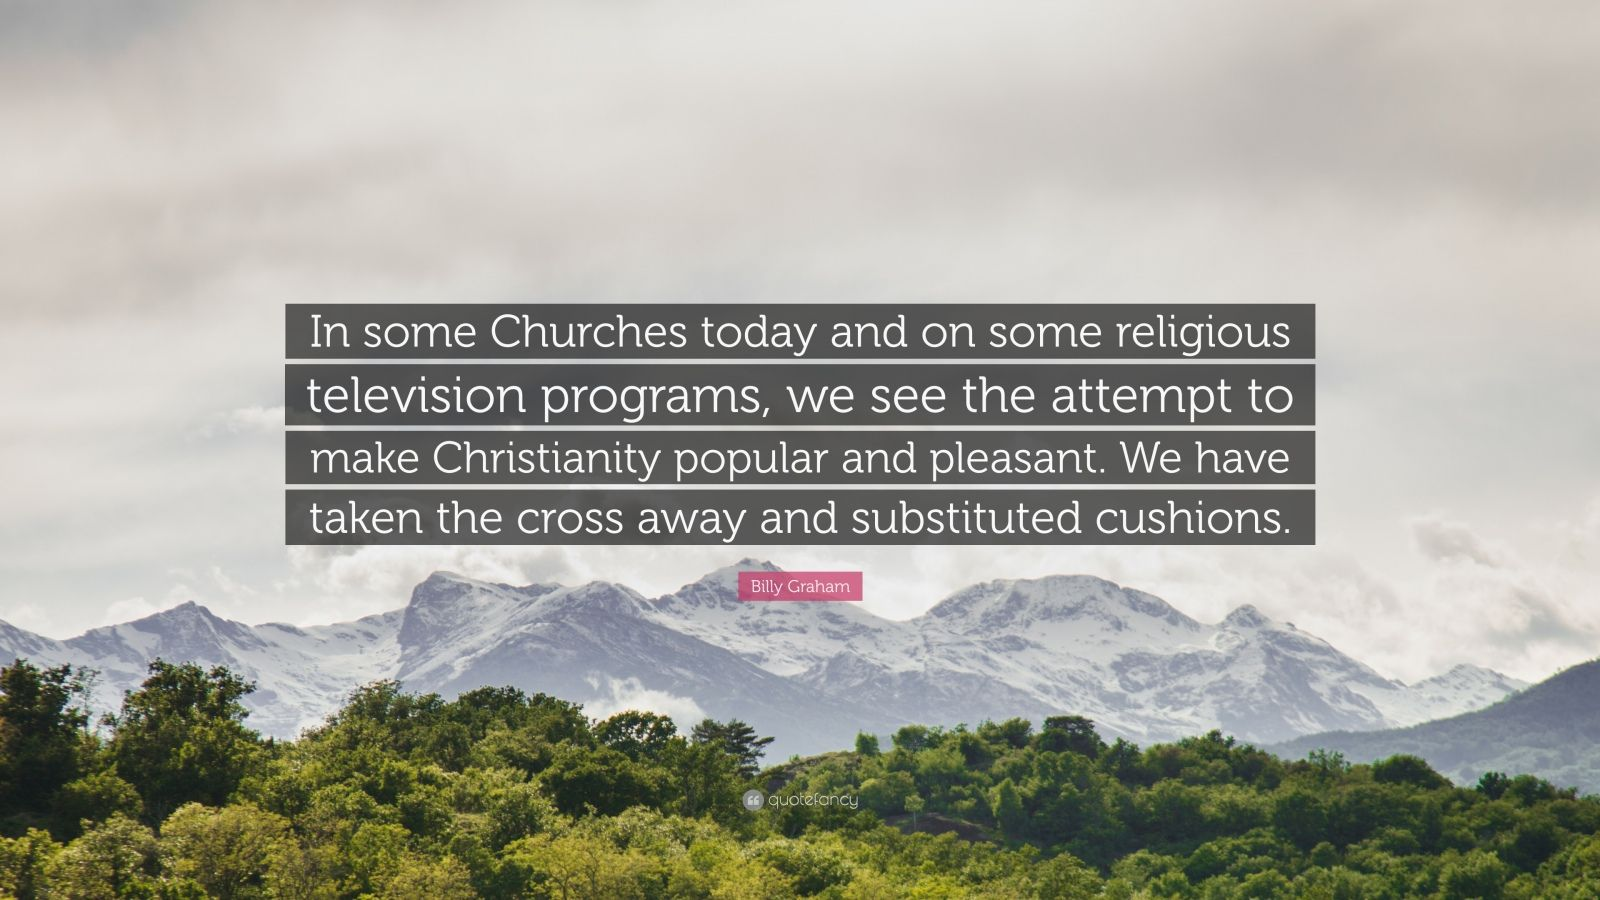 """Billy Graham Quote: """"In some Churches today and on some religious television programs, we see the attempt to make Christianity popular and pleasant. We have taken the cross away and substituted cushions."""""""